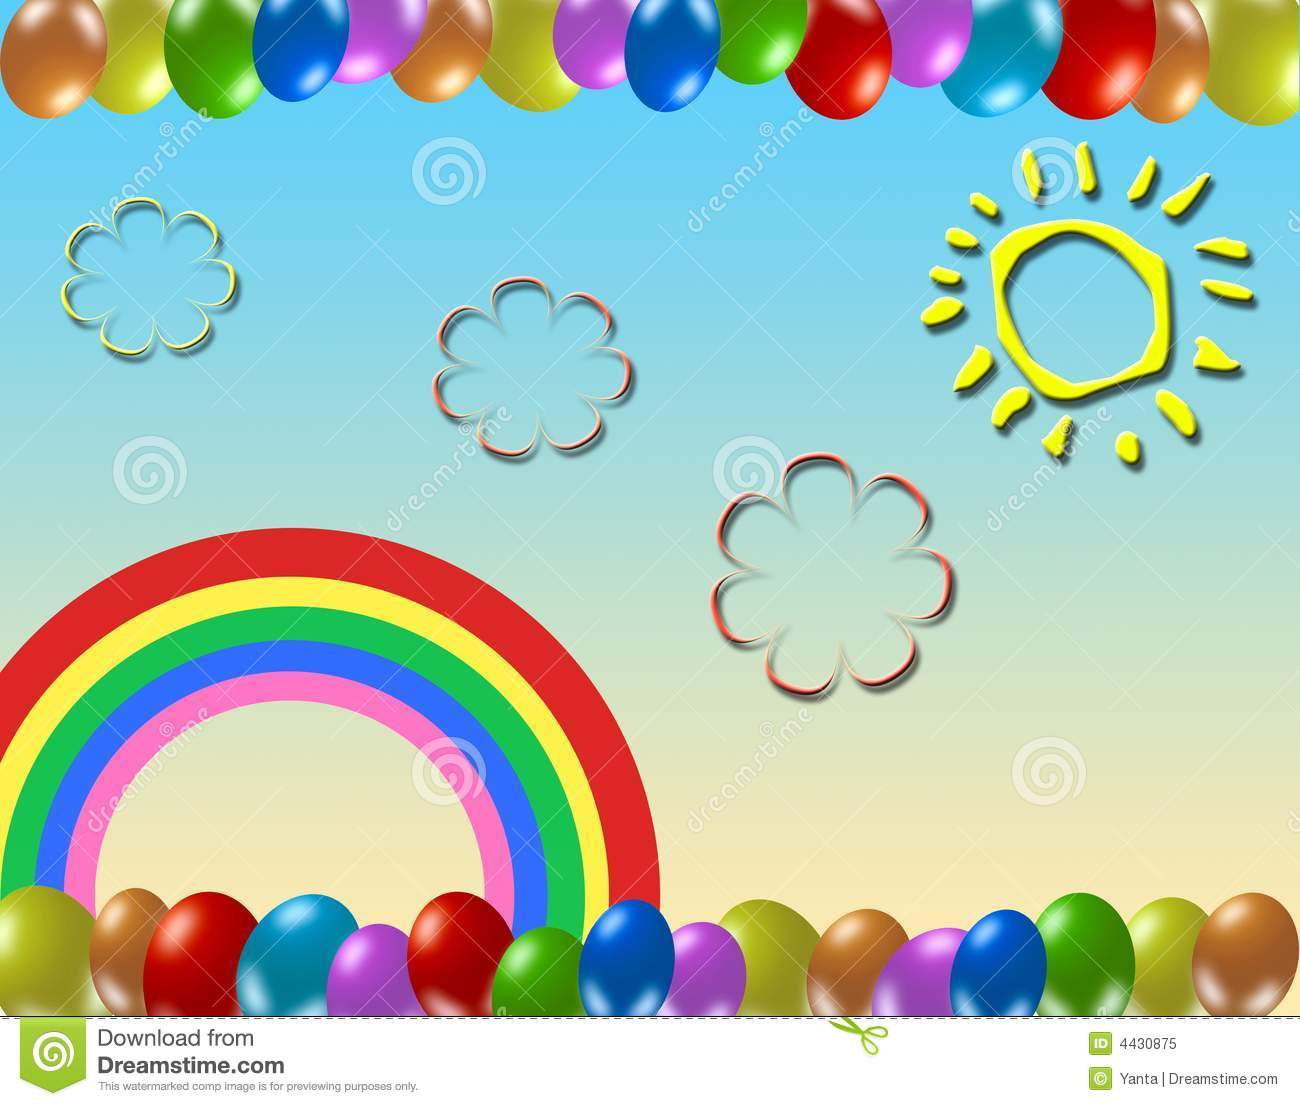 Kids background stock illustration. Image of multicolor ...